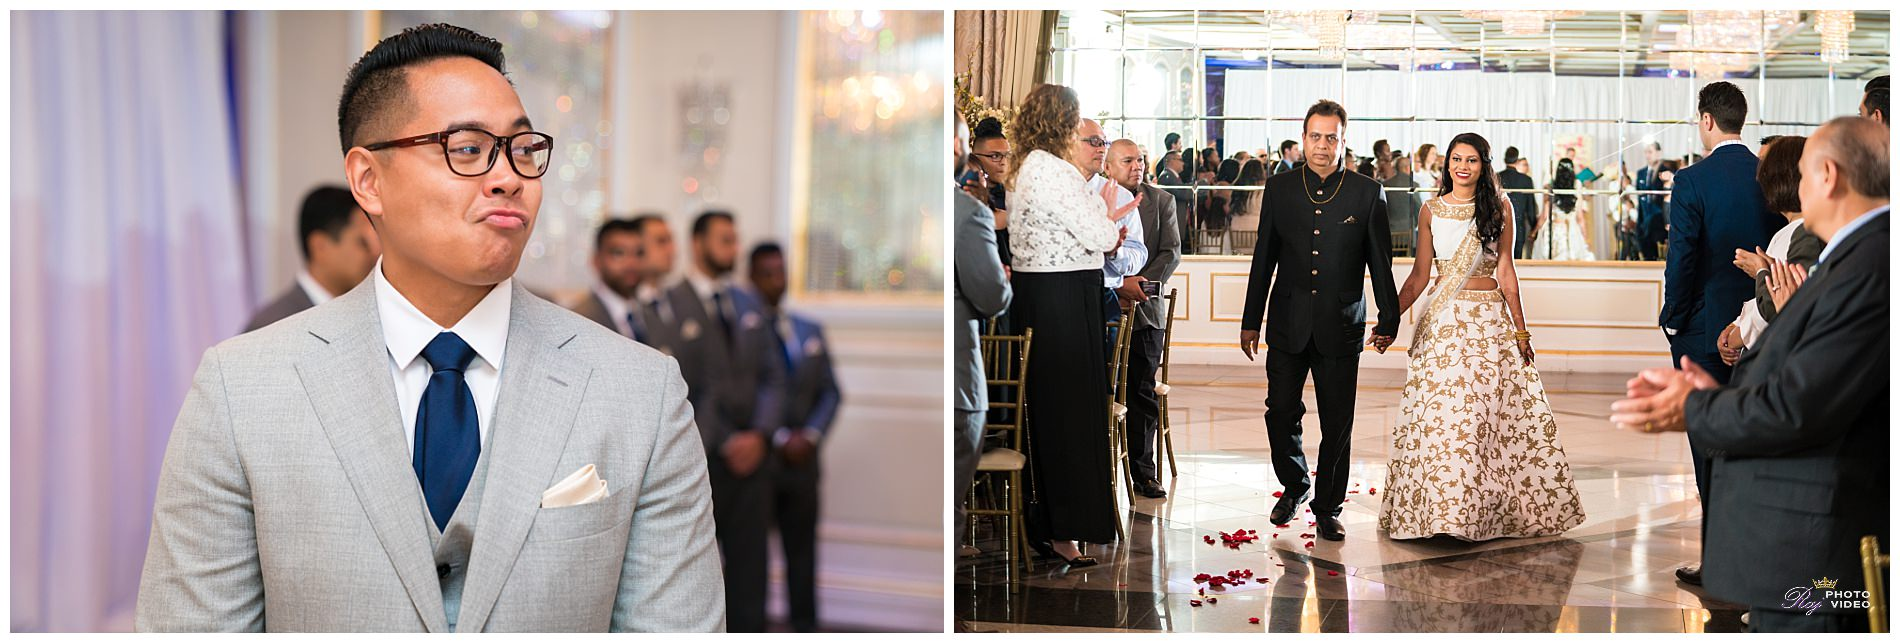 Royal-Manor-Garfield-NJ-Christian-Wedding-Ceremony-Khusbu-Jeff-41.jpg